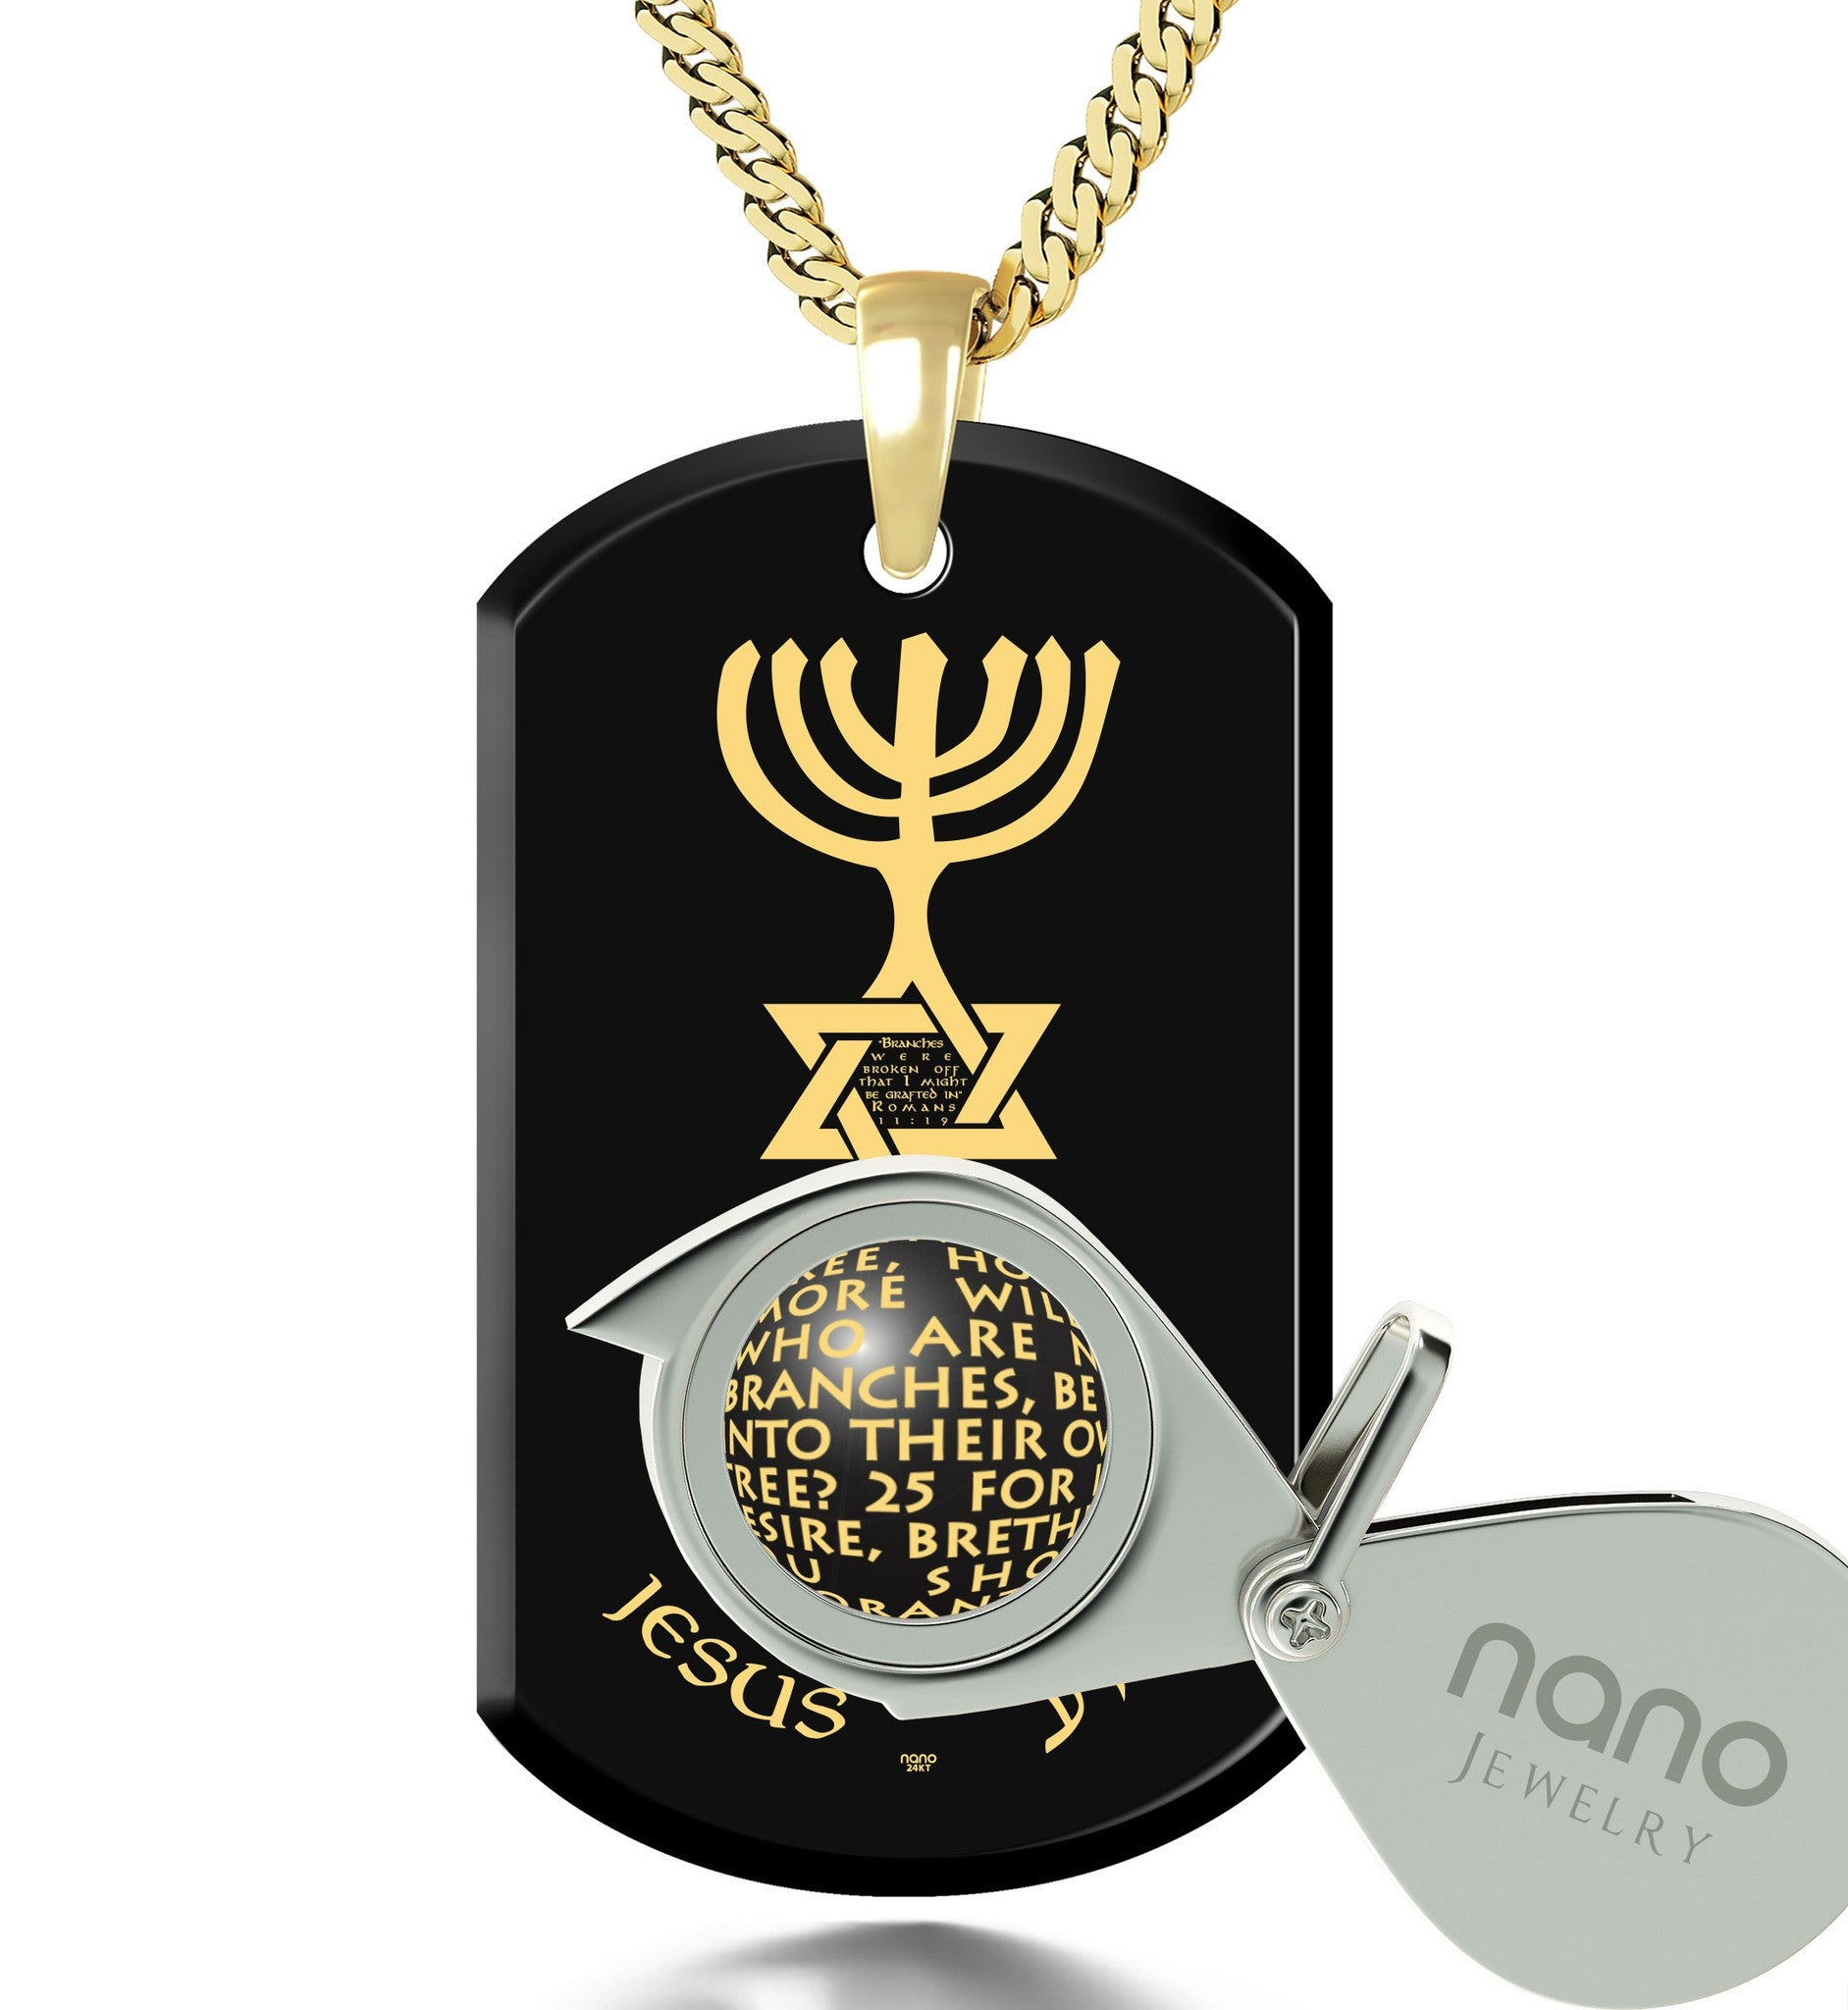 Religious gifts for men true faith jewelry surprise him now messianic jewelry with romans 1124 27 written imprint cool mens necklaces mozeypictures Gallery